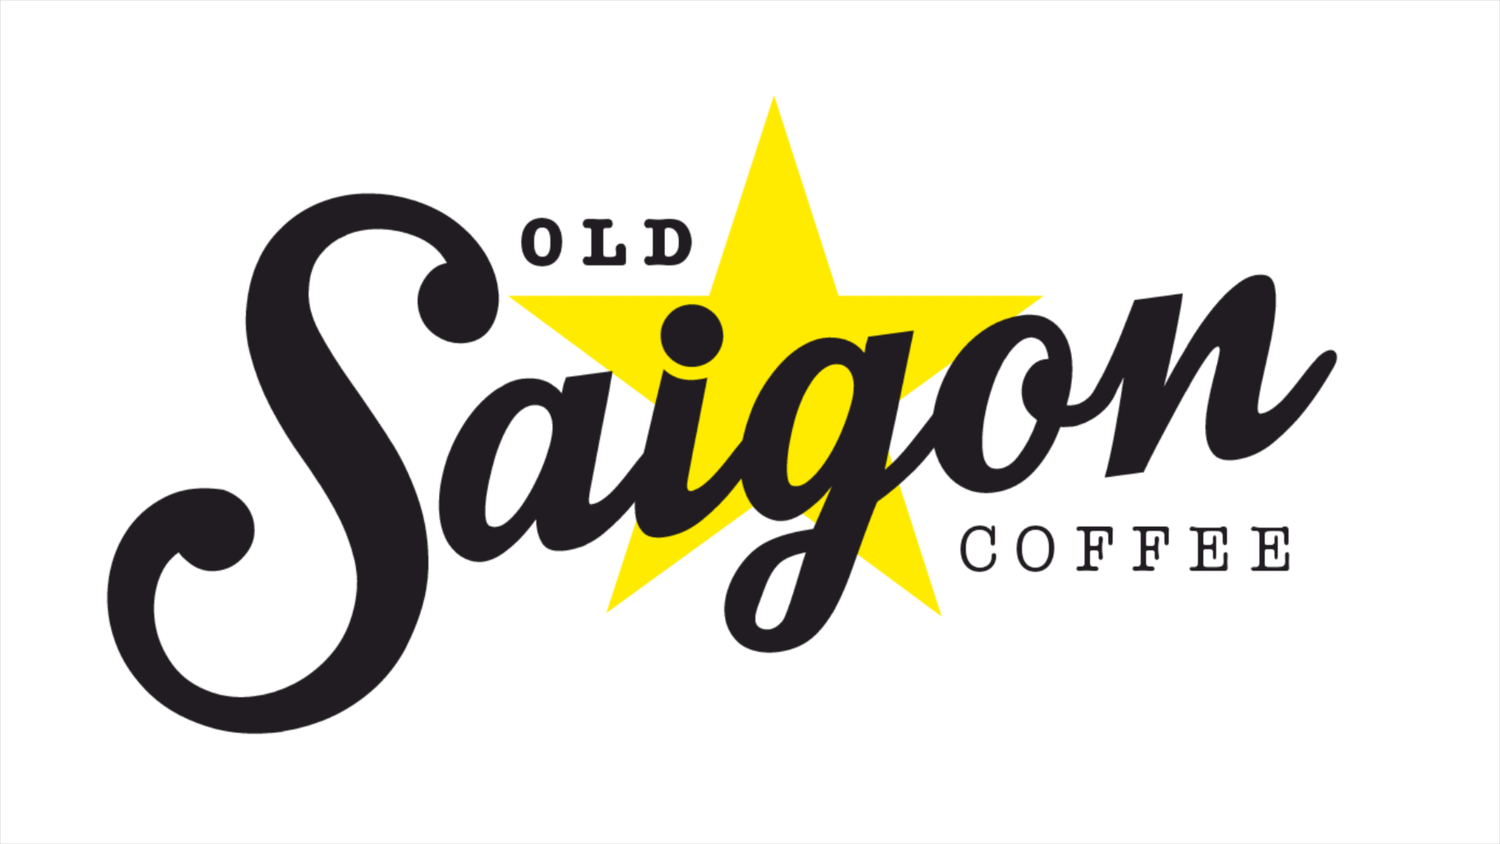 Old Saigon Coffee